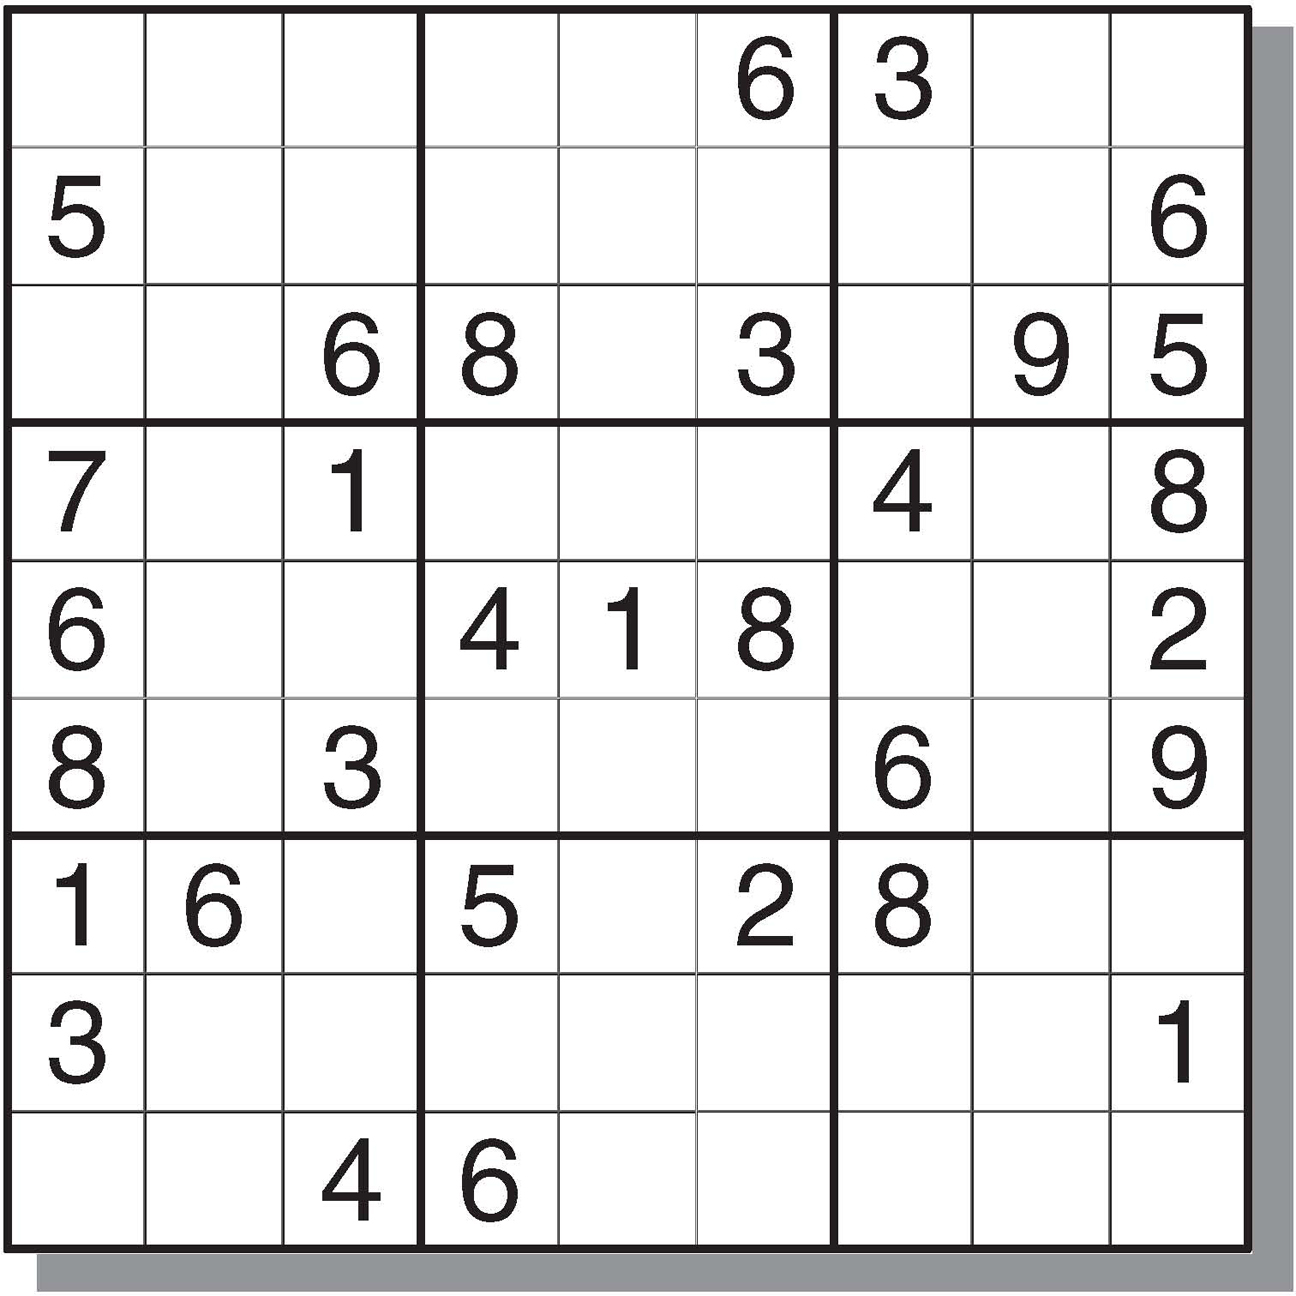 12 Best Photos Of Printable Sudoku Sheets - Printable Sudoku Puzzles - Printable Sudoku Puzzle With Answer Key